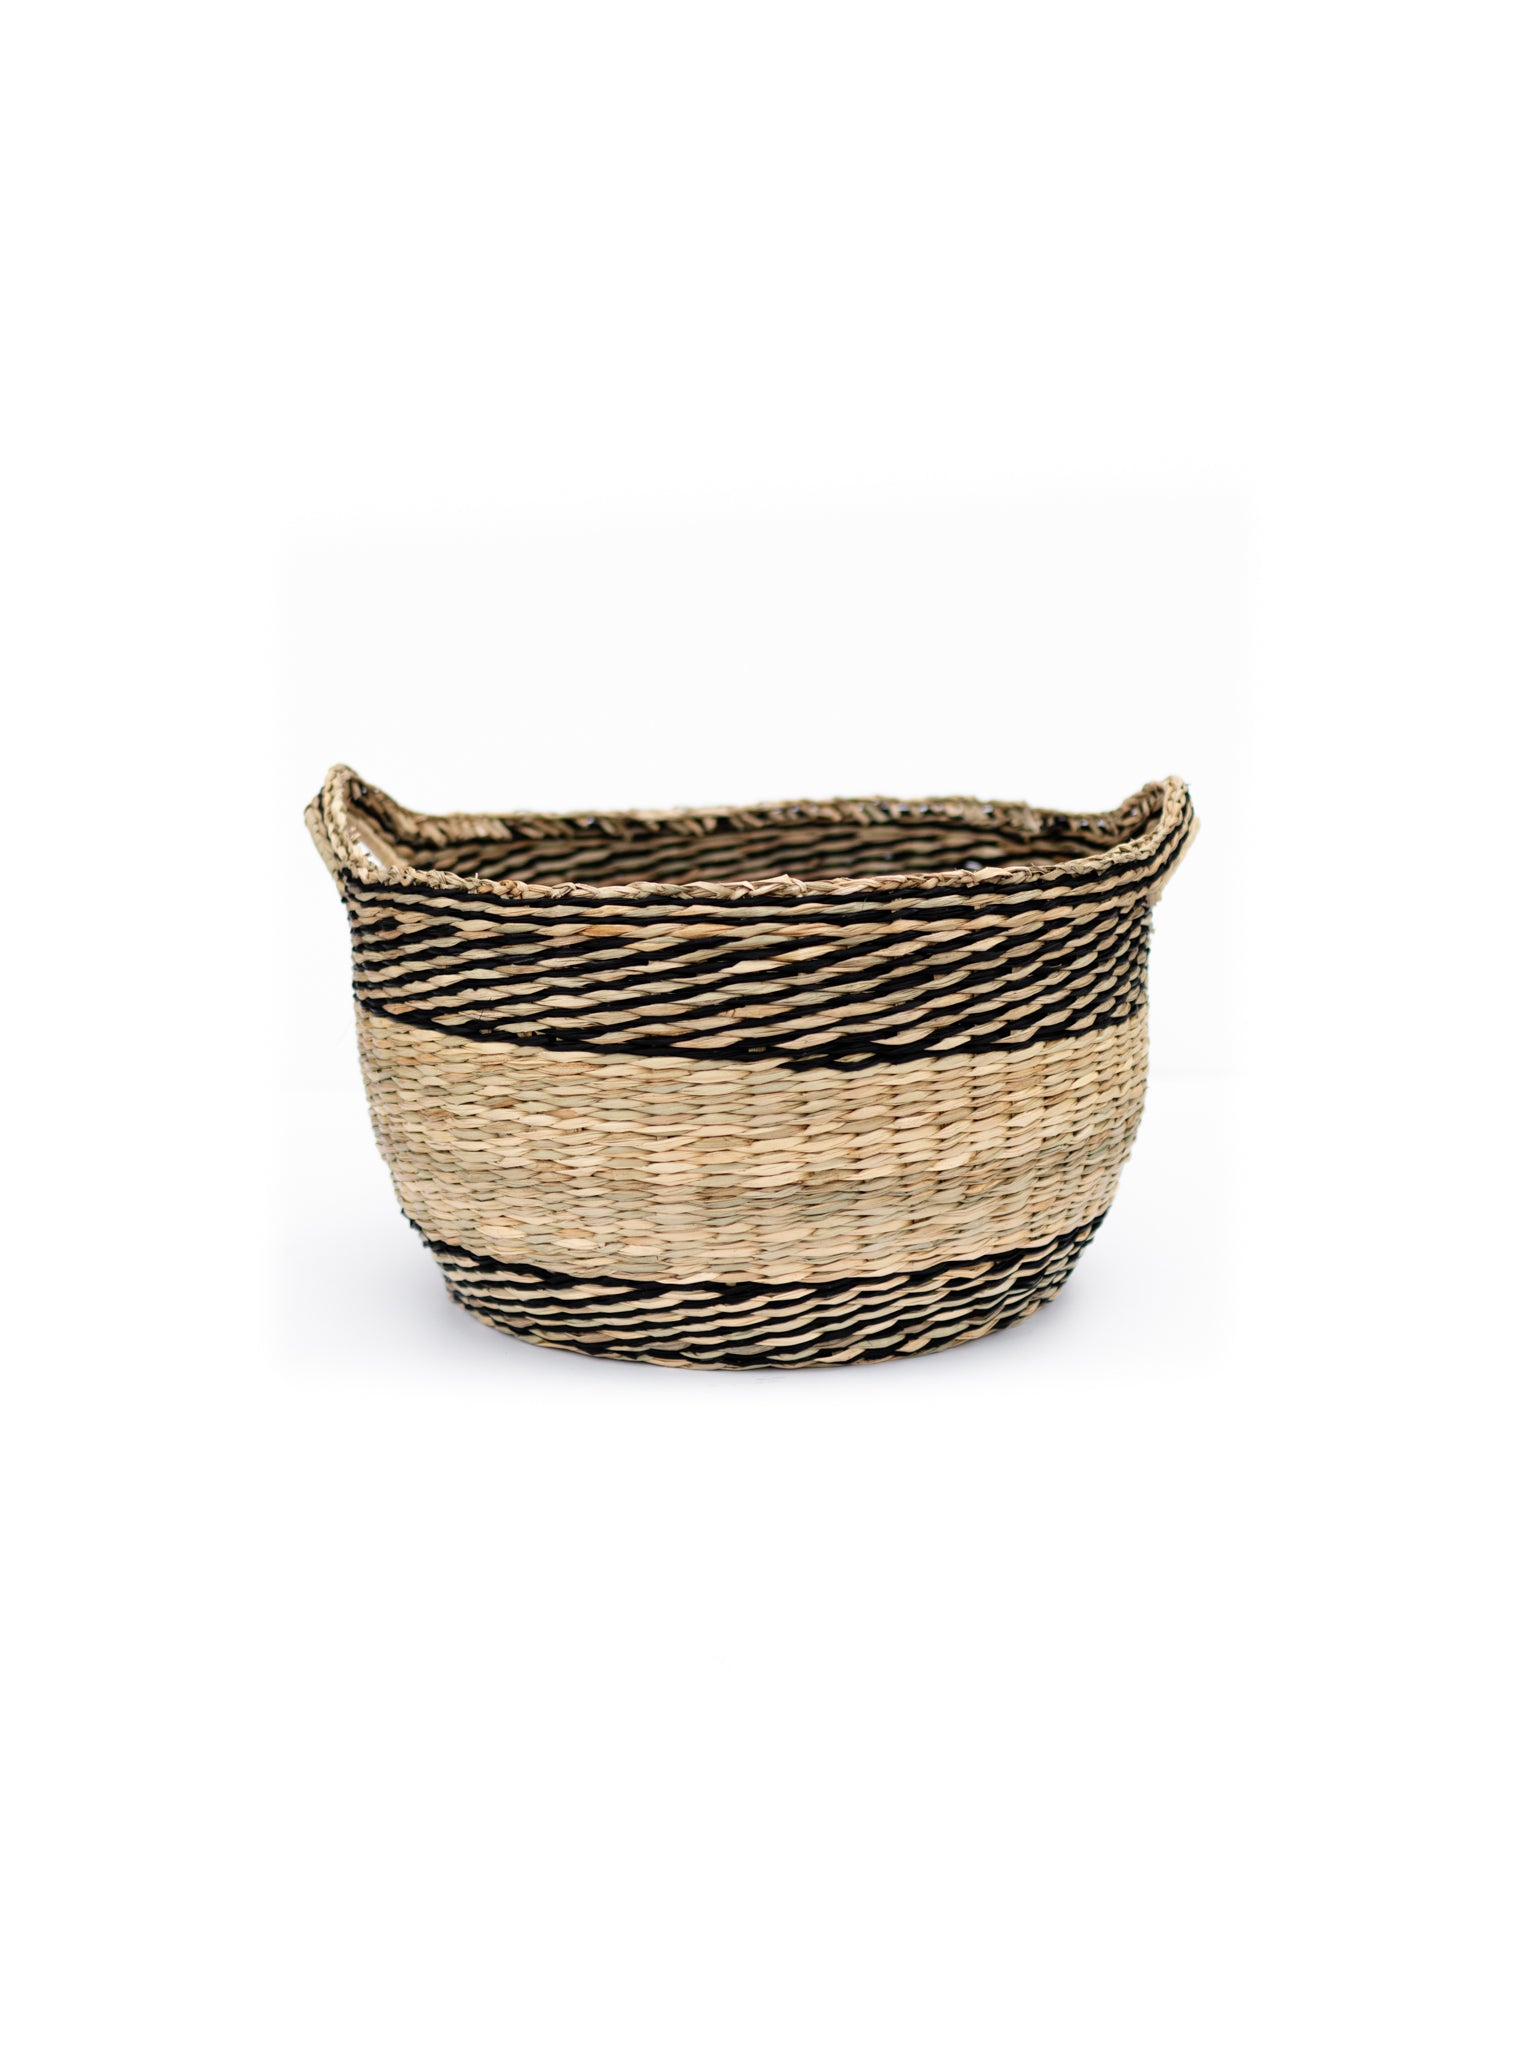 Seagrass Basket, Two Toned